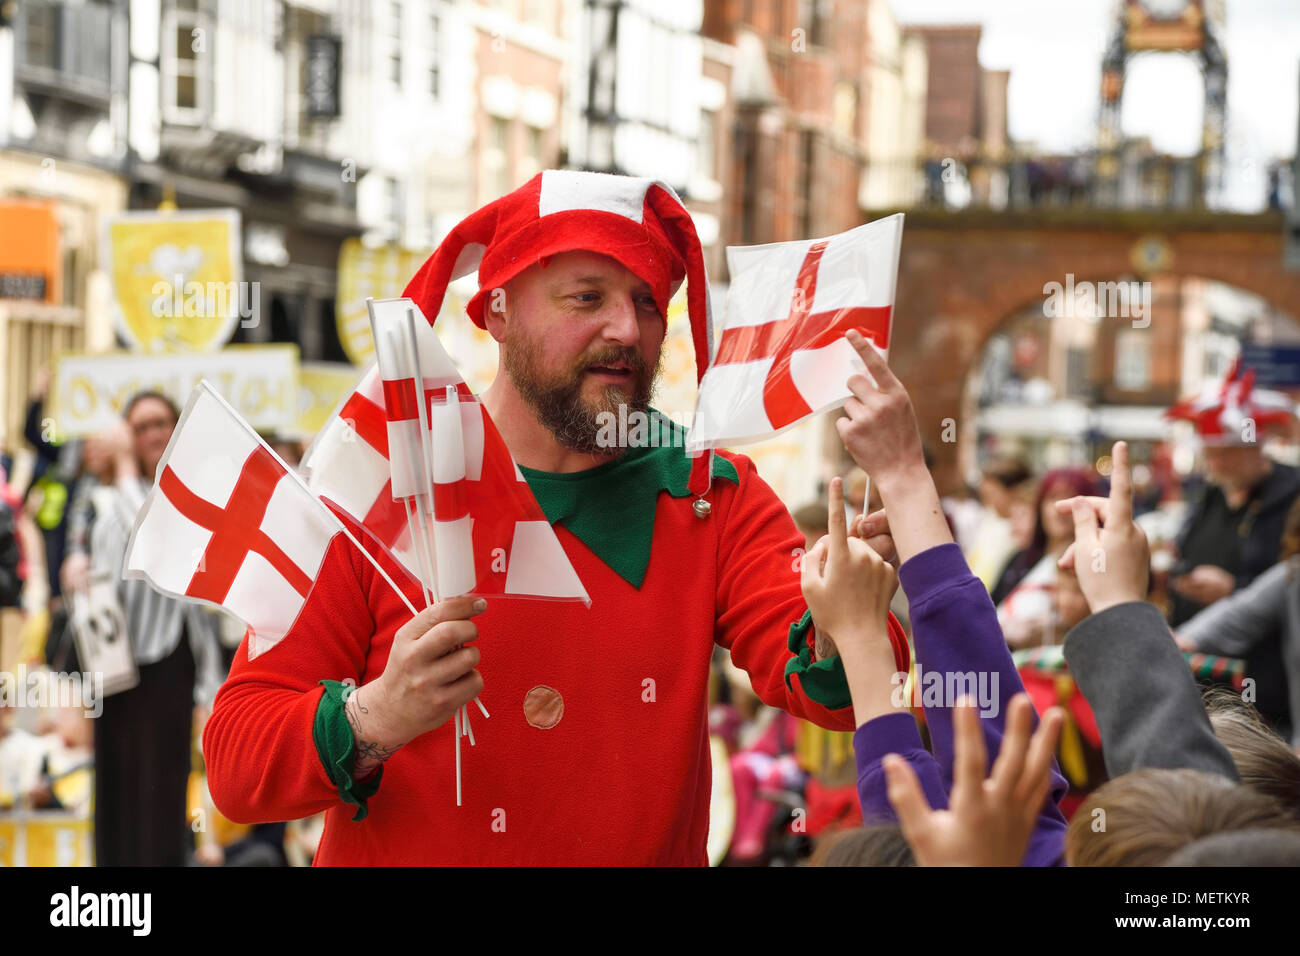 Chester, UK. 23rd April 2018. A jester hands out flags in the St George's Day parade through Chester city centre. The parade includes street performance, theatre and music with local school children performing many supporting roles. Credit: Andrew Paterson/Alamy Live News - Stock Image